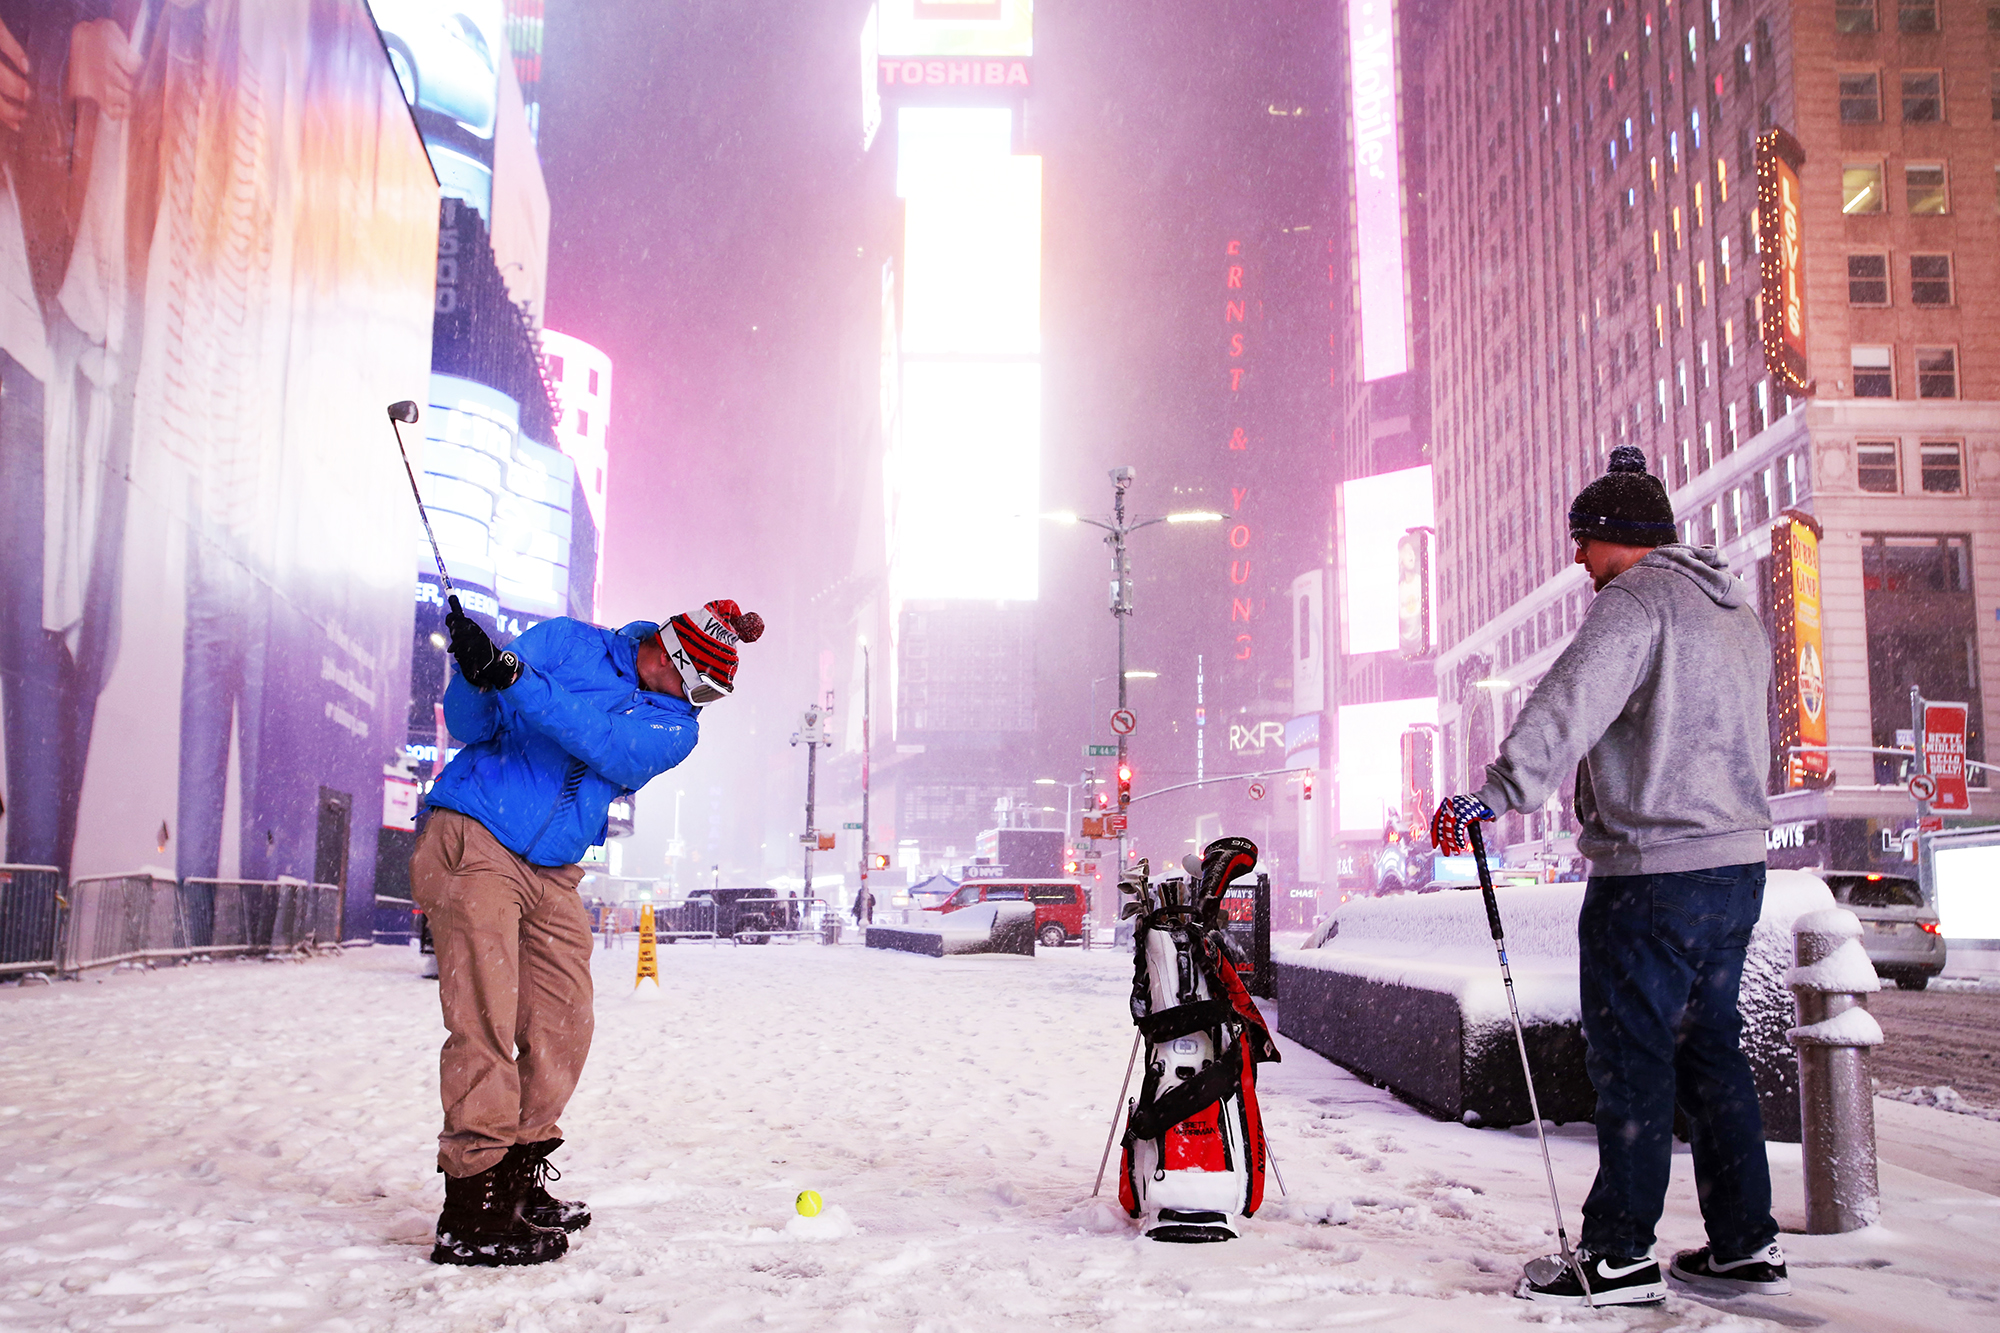 Two men play golf with a tennis ball as Winter Storm Stella sweeps through Times Square in New York City, on March 14, 2017.